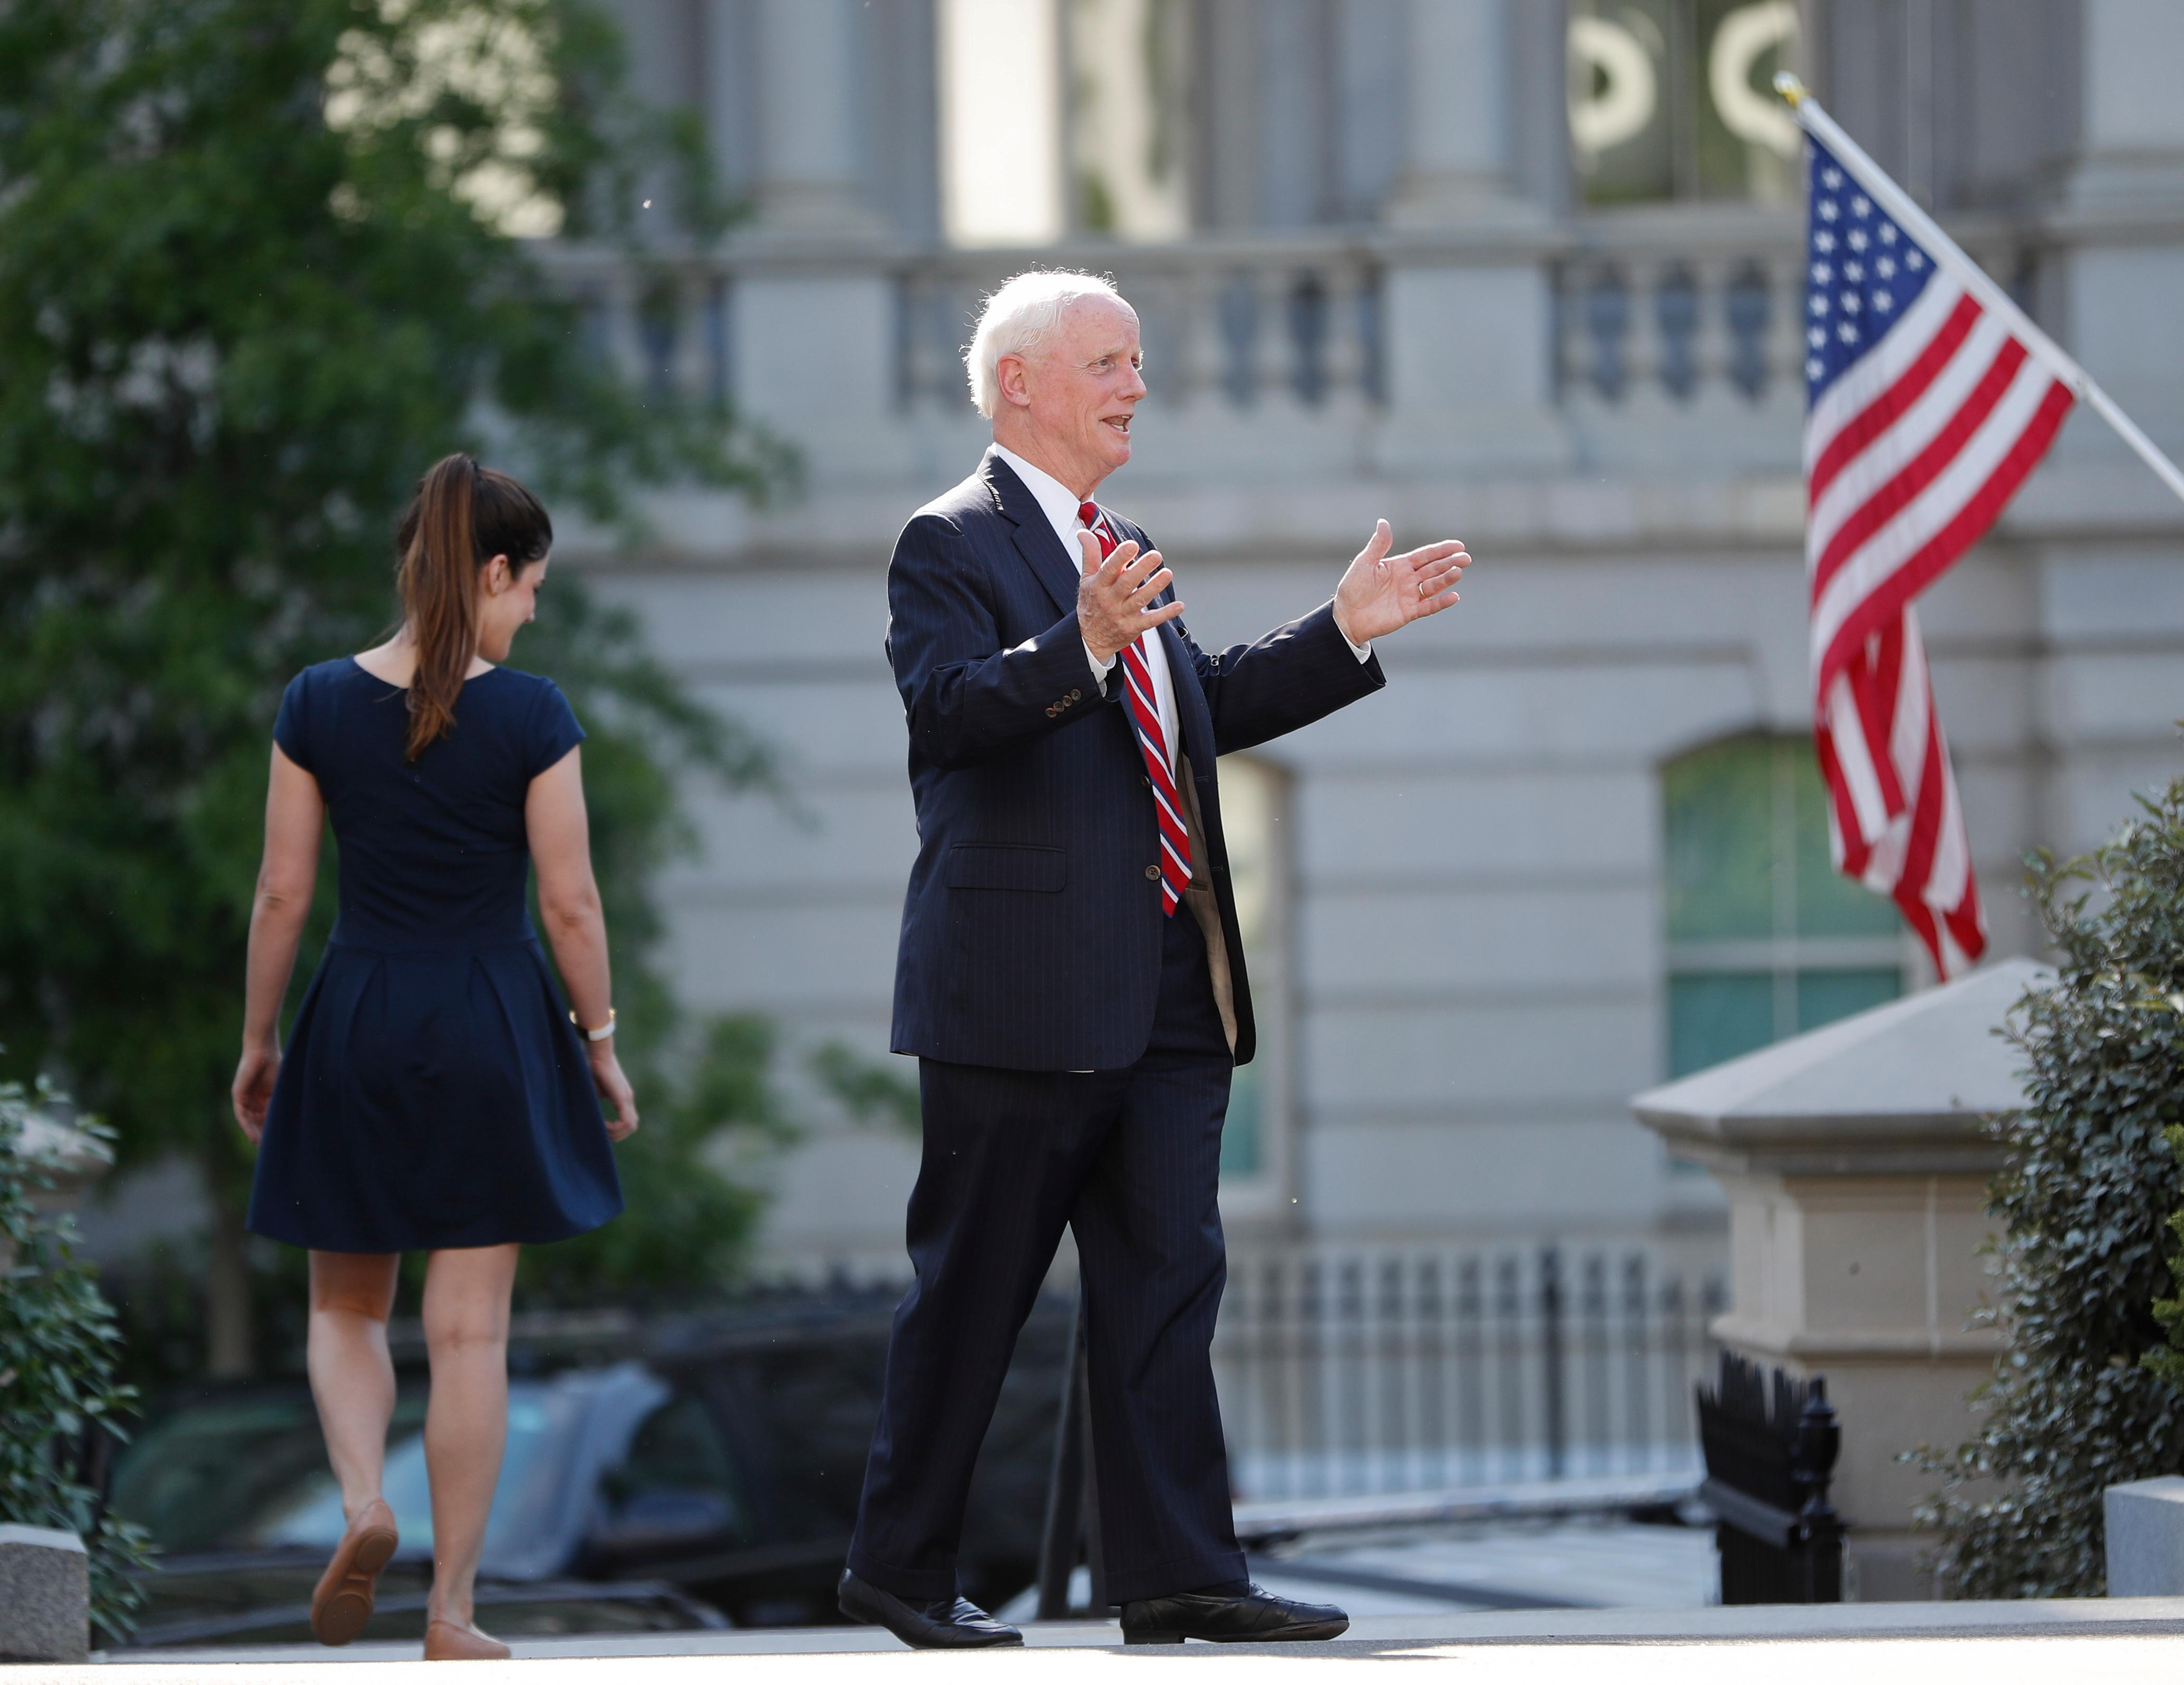 Former Oklahoma Gov. Frank Keating stops to answers questions from members of the media as he leaves the West Wing of the White House in Washington, Wednesday, May 17, 2017. The White House says President Donald Trump will be interviewing four potential candidates to lead the FBI. (AP Photo/Pablo Martinez Monsivais)